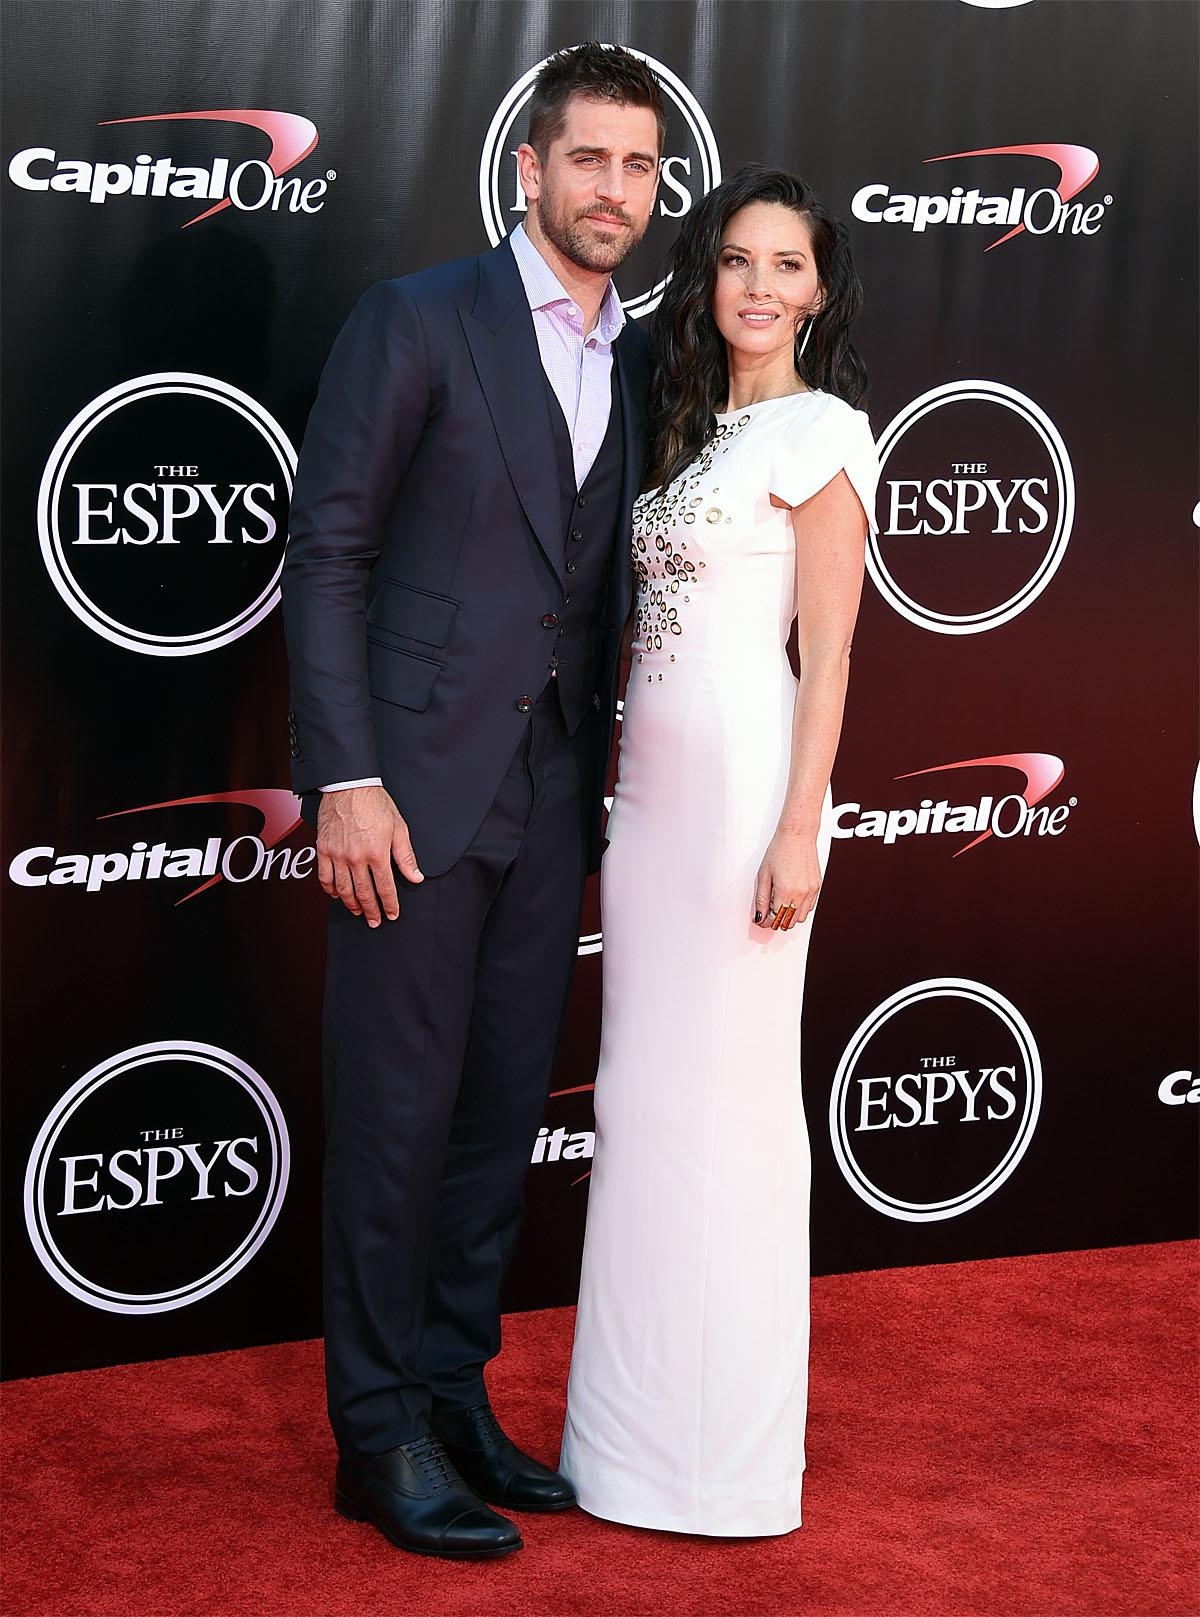 NFL football player Aaron Rodgers, of the Green Bay Packers, left, and Olivia Munn arrive at the ESPY Awards at the Microsoft Theater on Wednesday, July 13, 2016, in Los Angeles. (Photo by Jordan Strauss/Invision/AP)